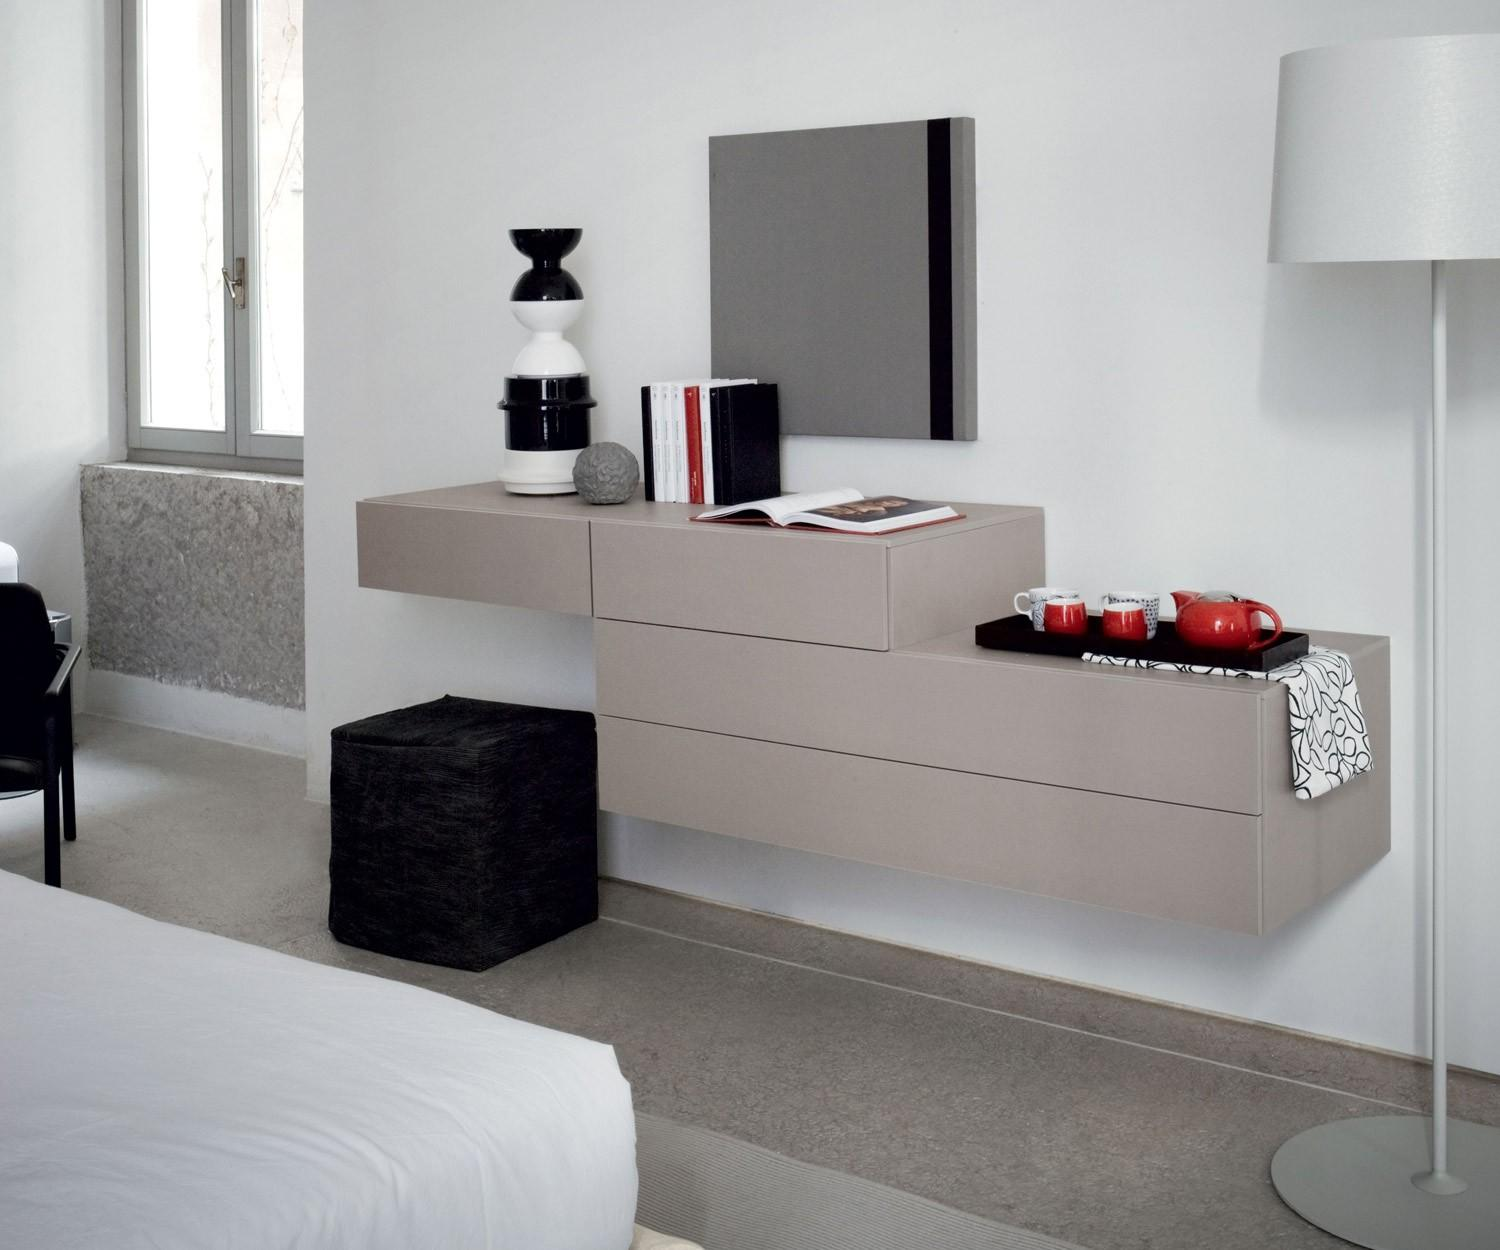 h ngekommode wei novamobili easy 2 schubladen. Black Bedroom Furniture Sets. Home Design Ideas